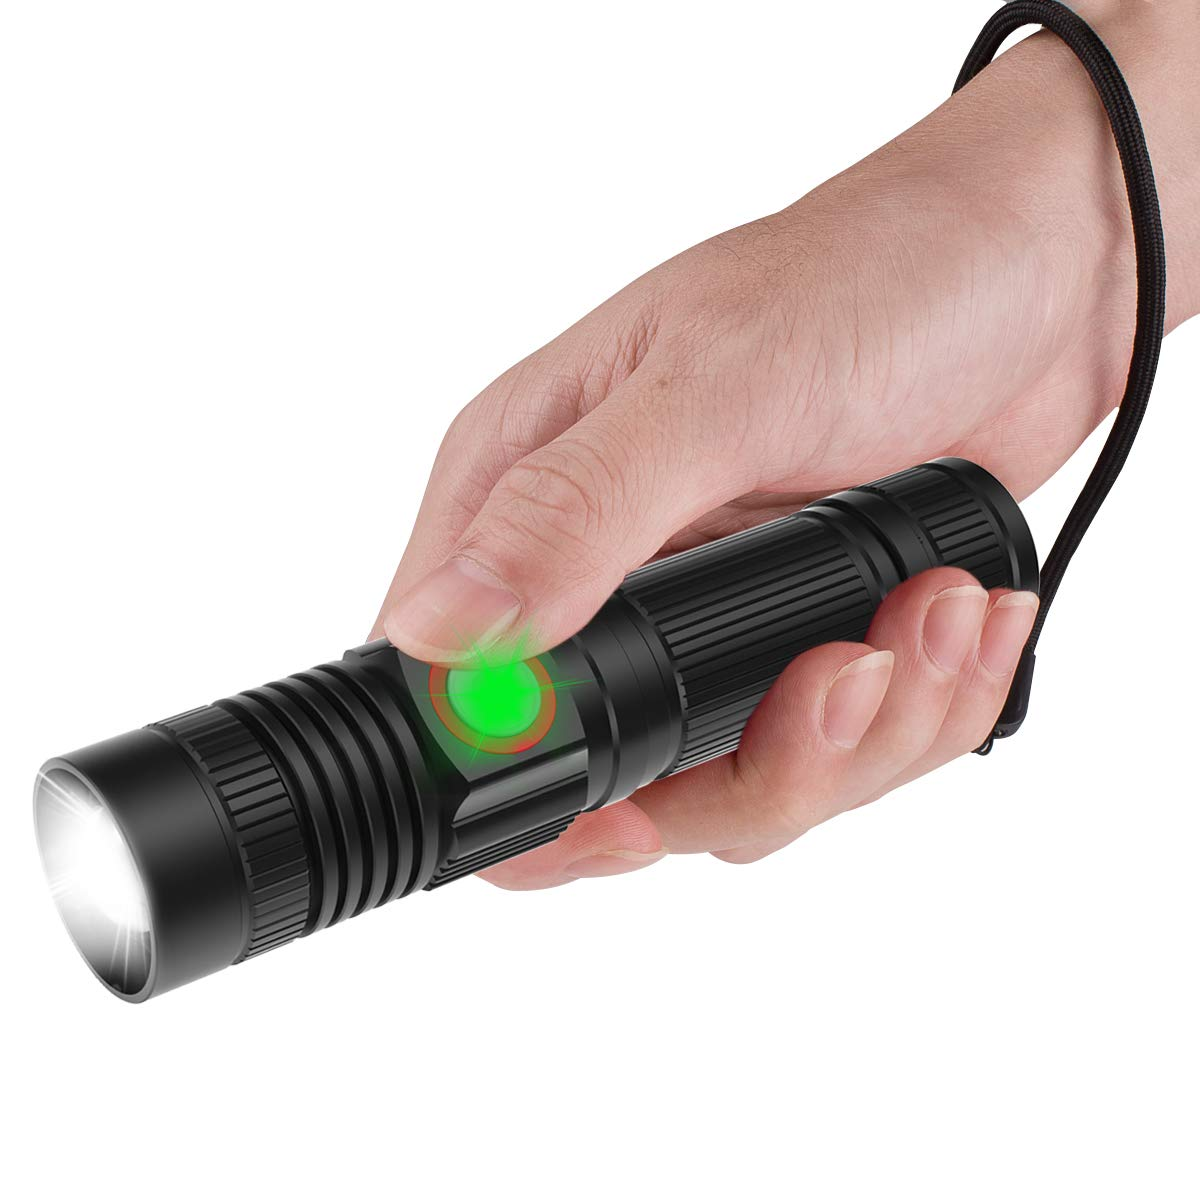 Absolutely the best bright flashlight with 5 light modes for the price! I love it...